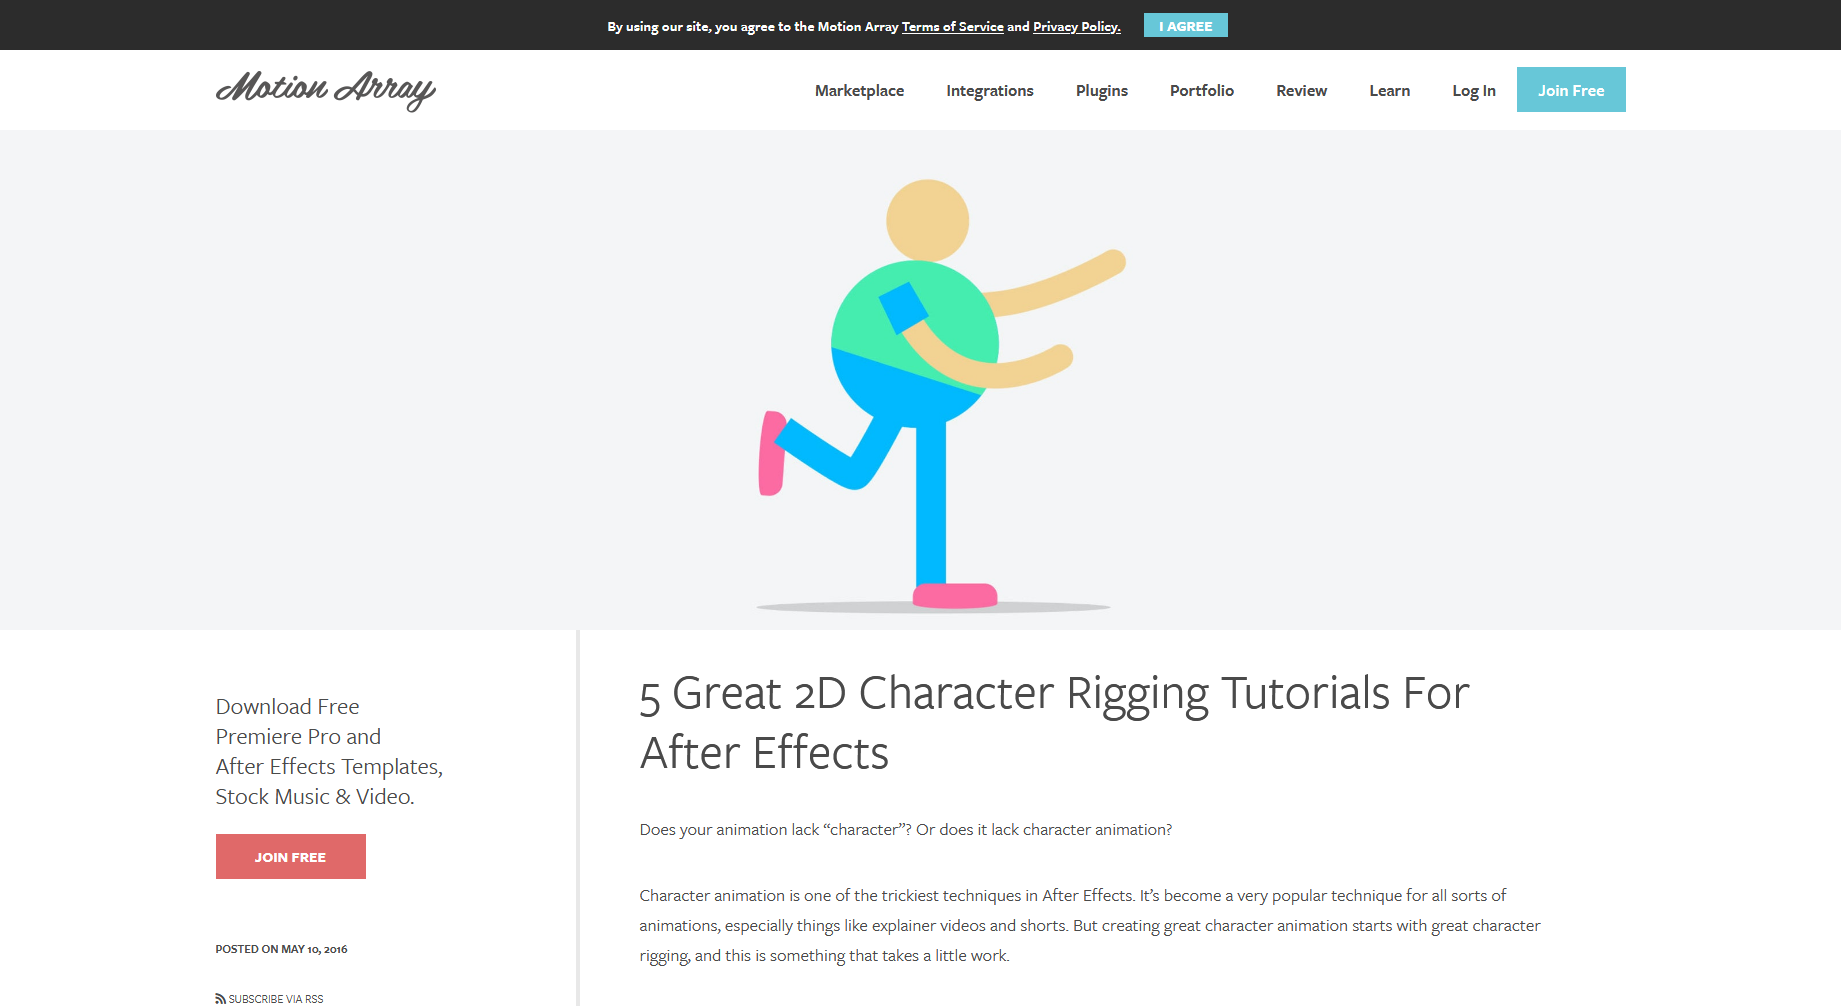 5 Great 2D Character Rigging Tutorials for After Effects — Motion Array